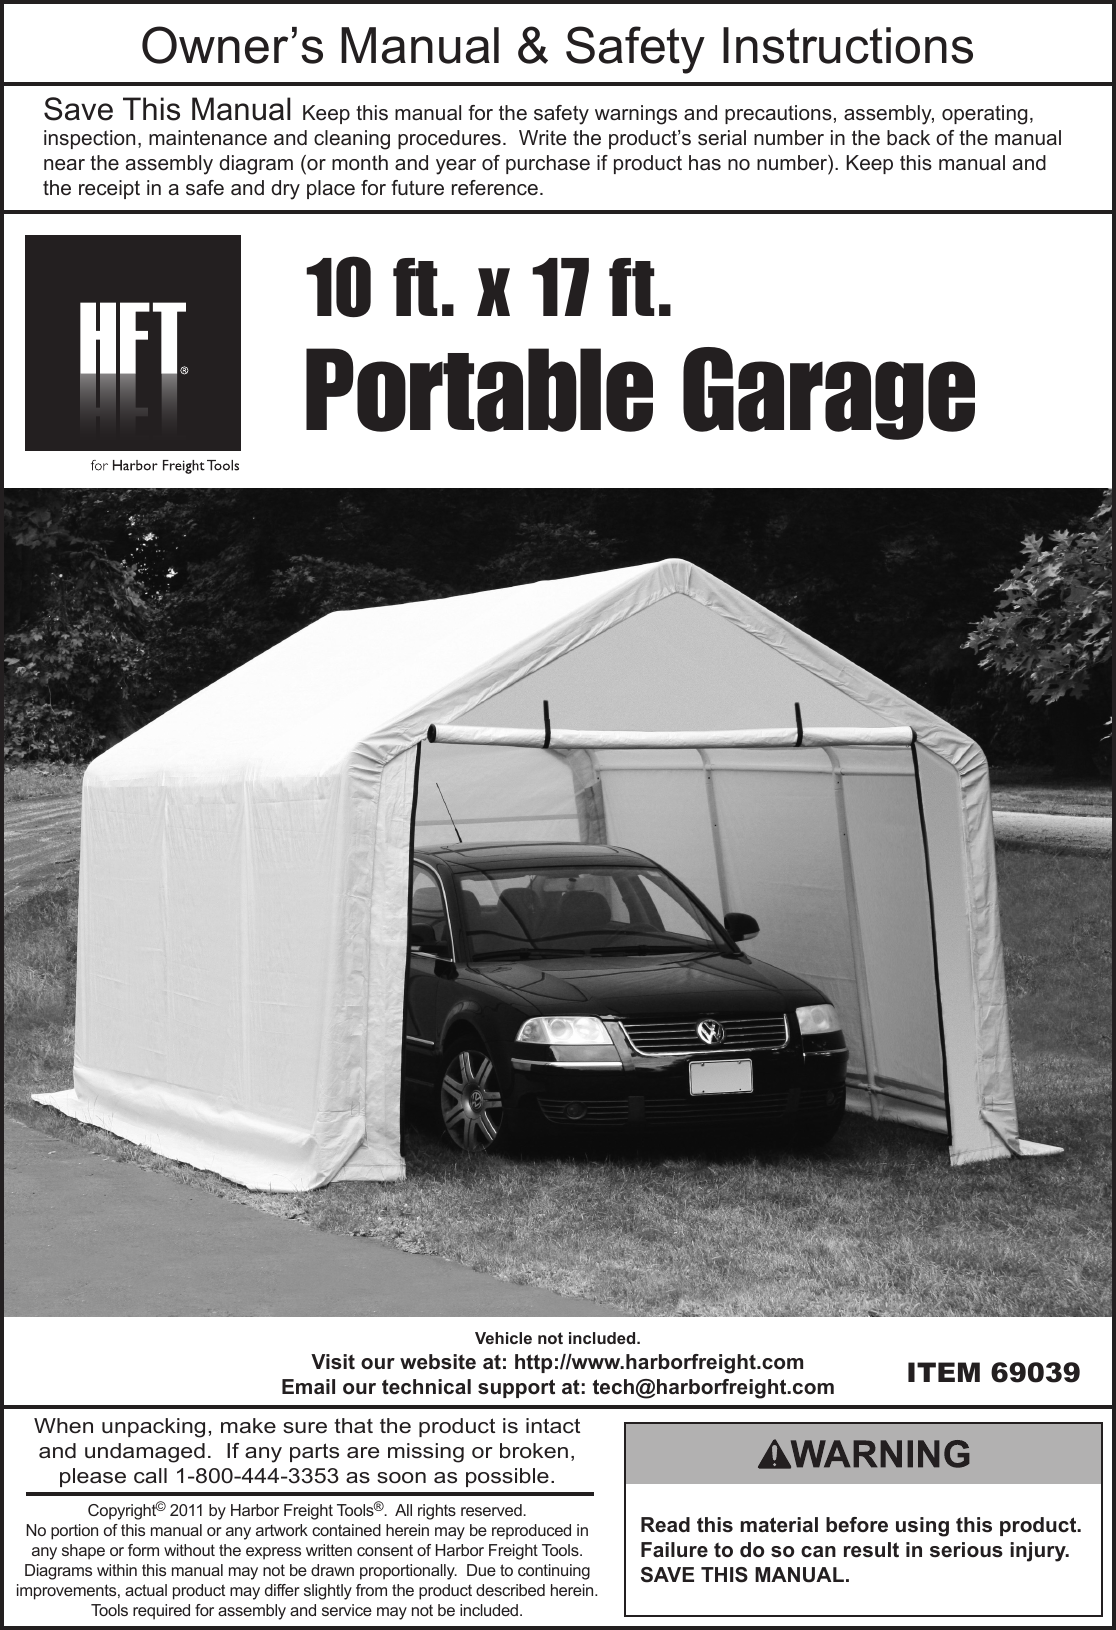 Cover Tech Portable Garage Instructions